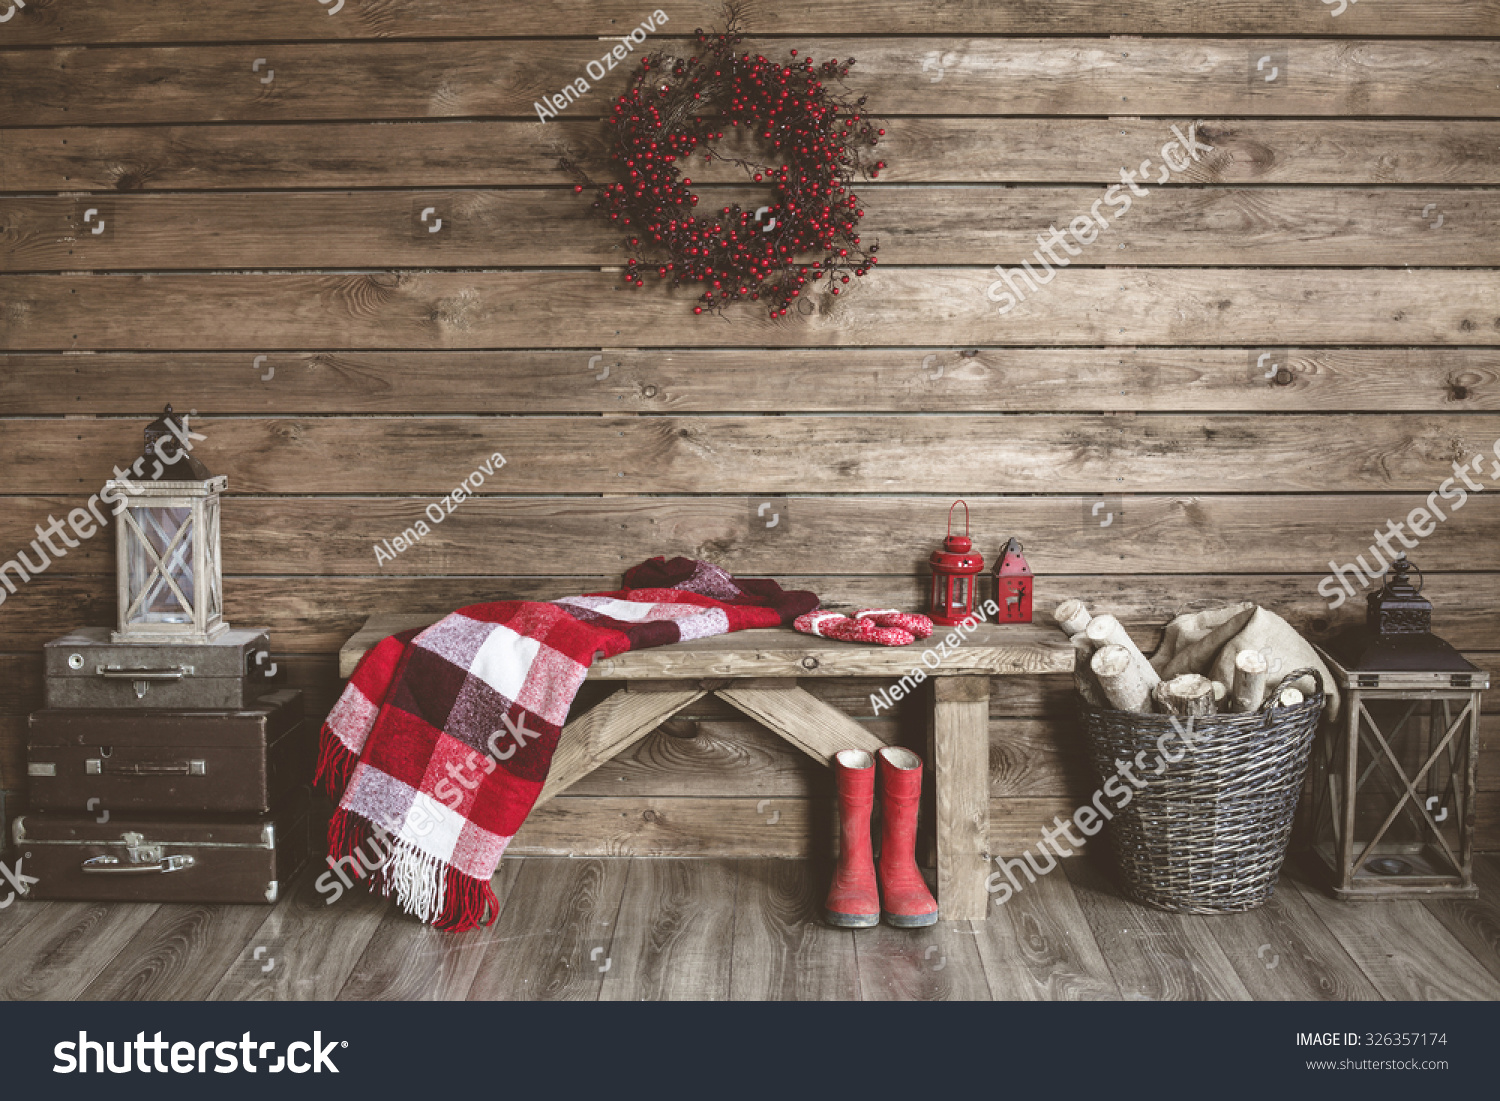 House Decoration Images Winter Home Decor Christmas Rustic Interior Stock Photo